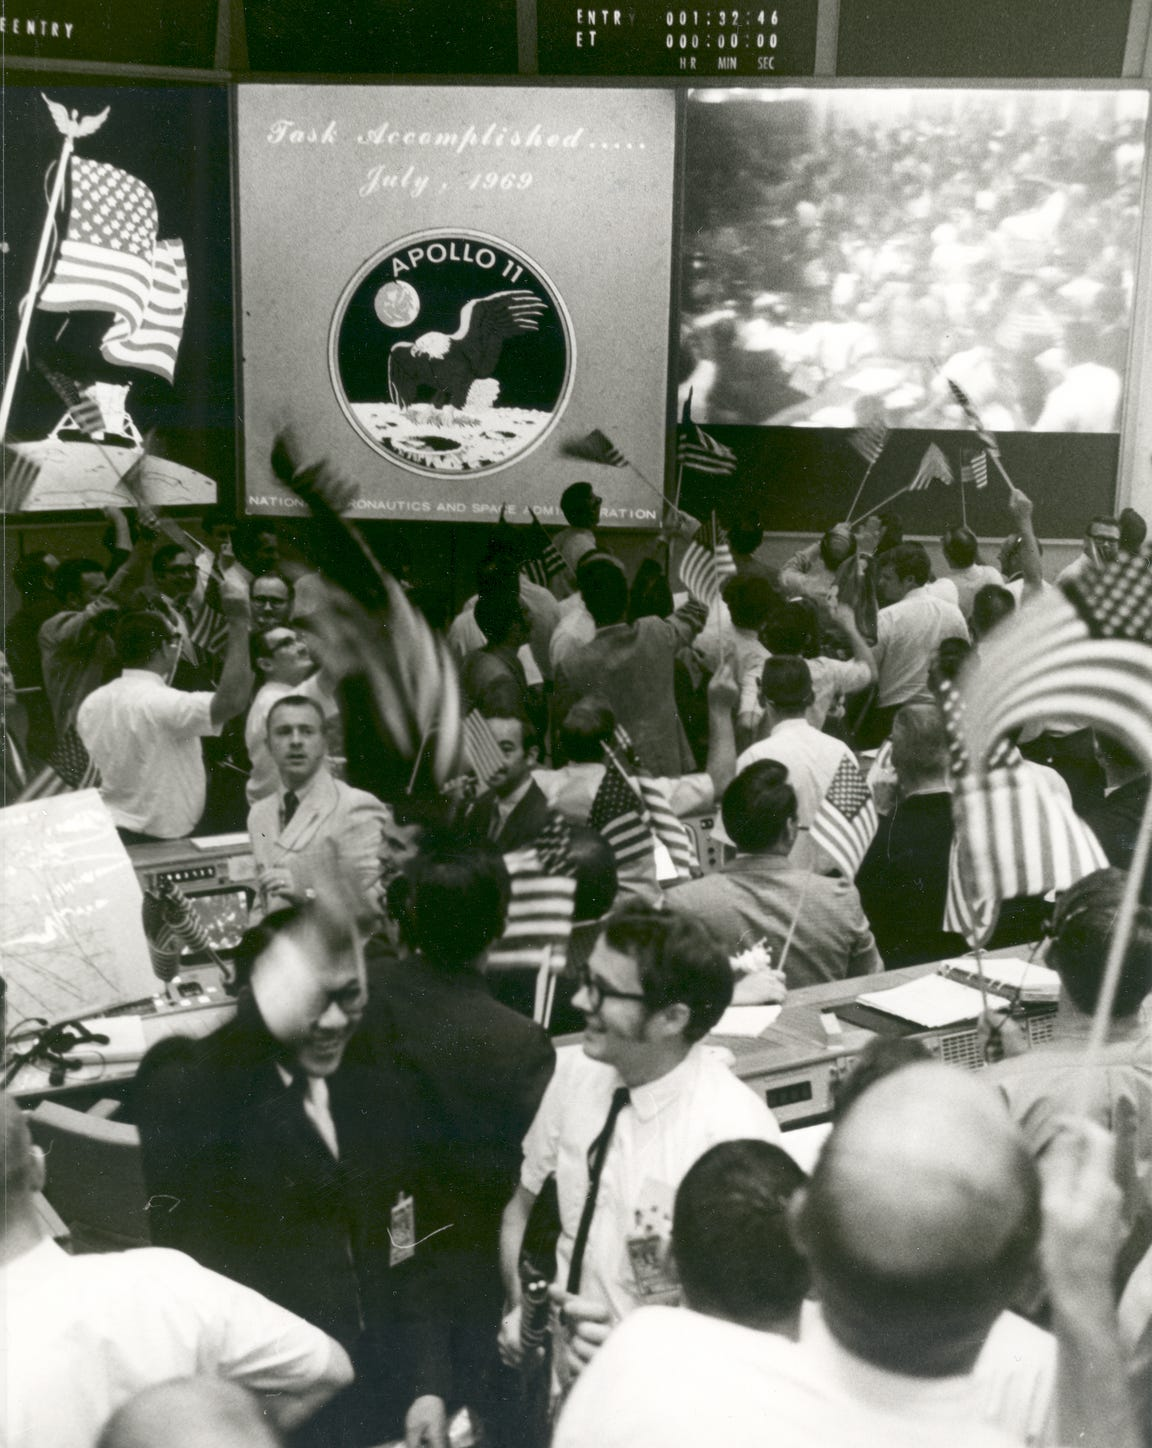 In the Mission Operations Control Room of the Mission Control Center, Building 30, Manned Spacecraft Center, flight controllers applaud the splashdown and success of the Apollo 11 lunar mission. Four days earlier on July 20, 1969, mission commander Neil Armstrong and lunar module pilot Buzz Aldrin landed on the moon.